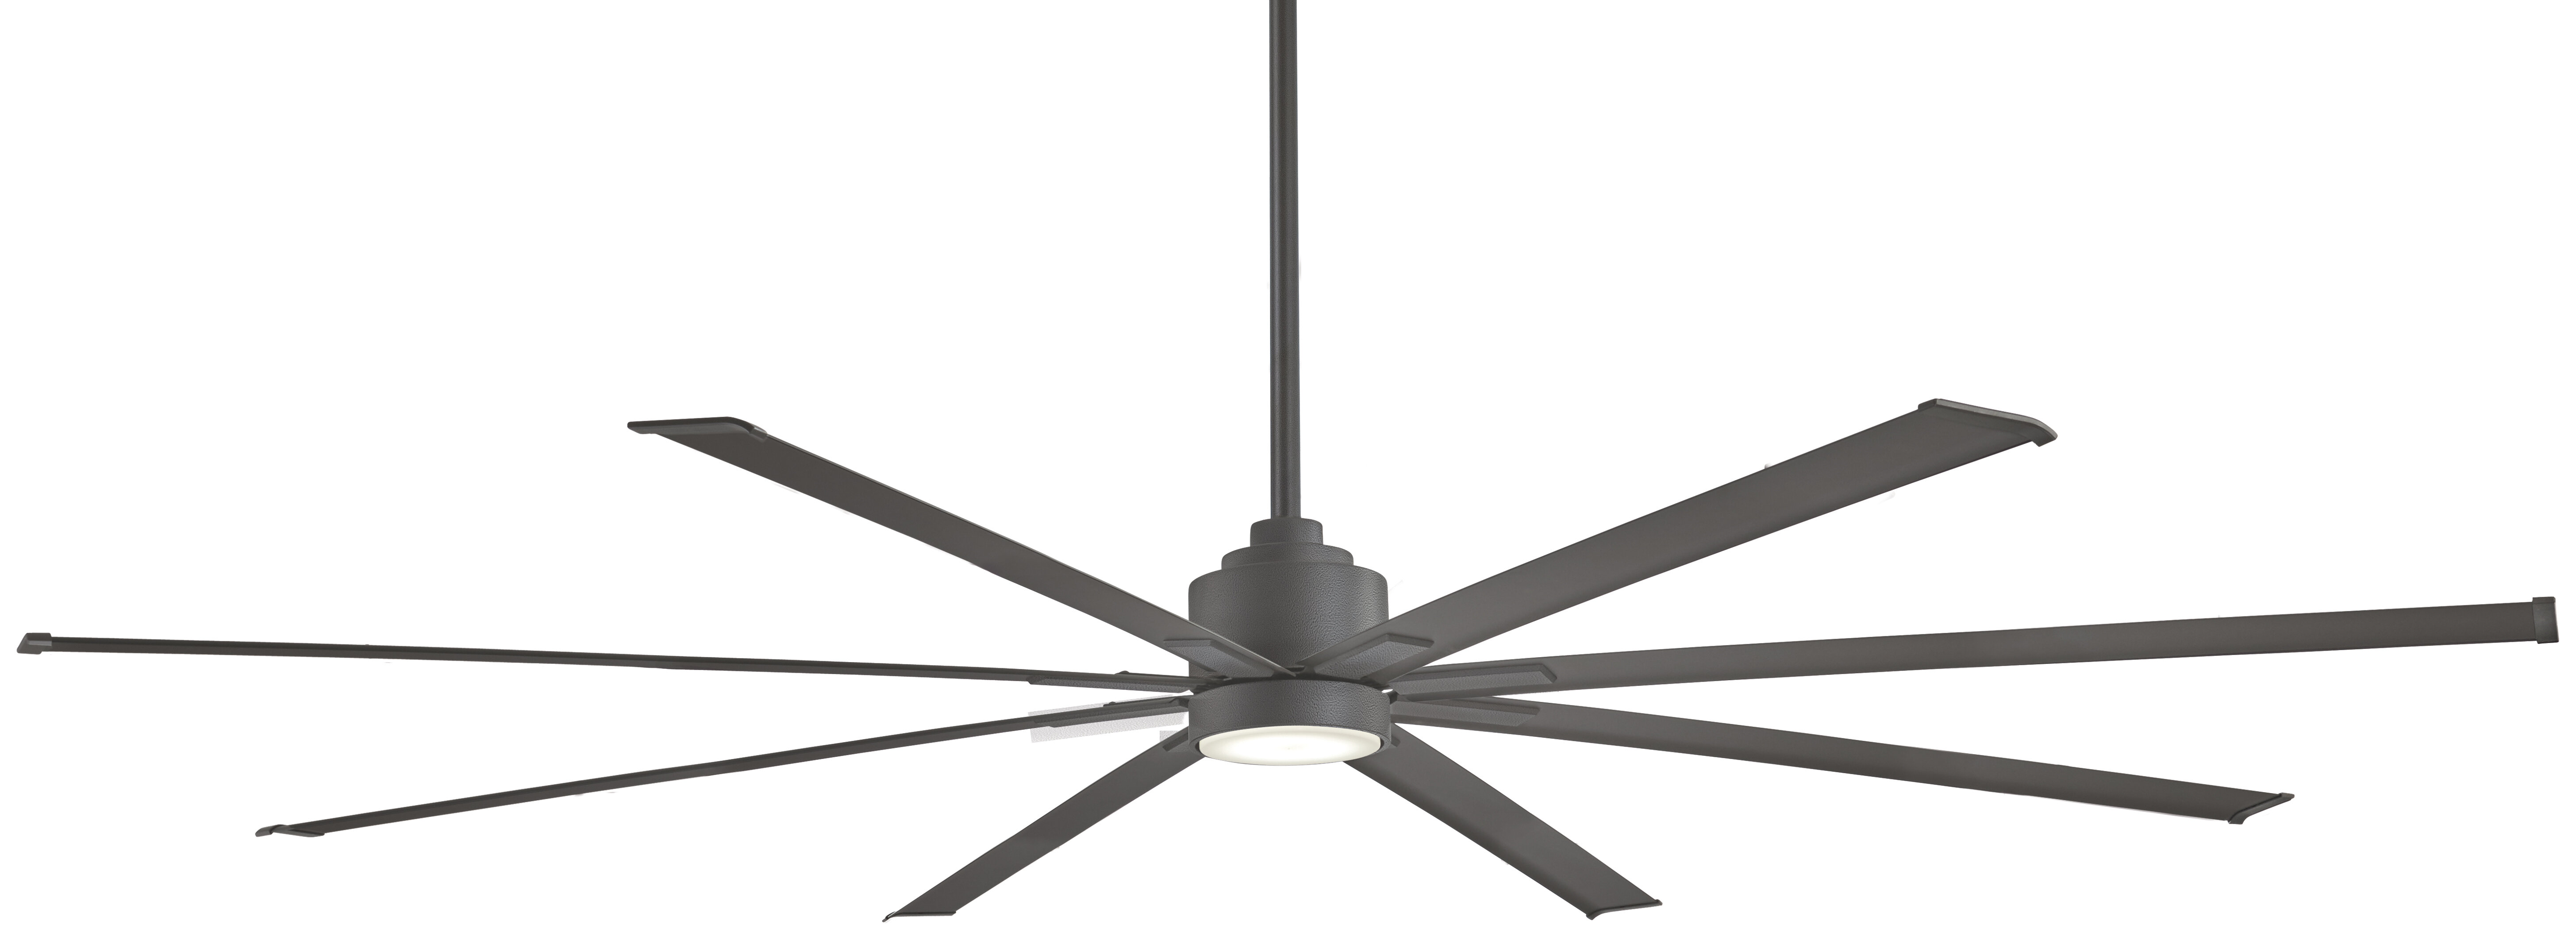 "Minka Aire 84"" Xtreme 8 Outdoor Ceiling Fan with Remote & Reviews"